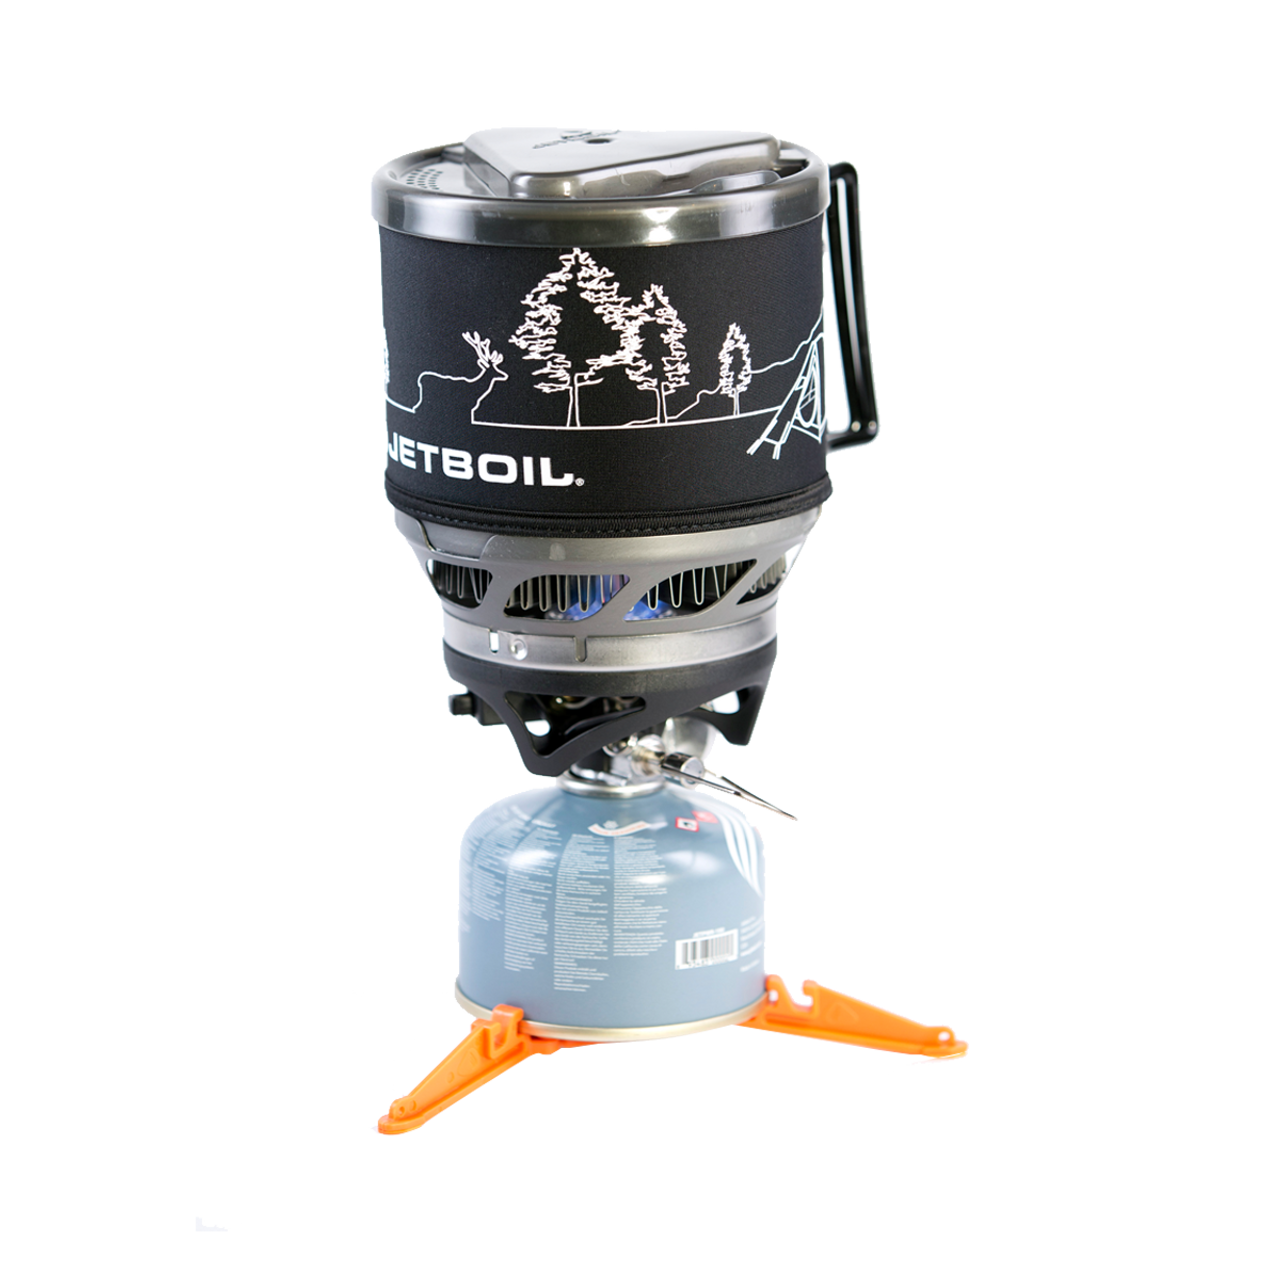 Jetboil MiniMo Line Art Cooking System